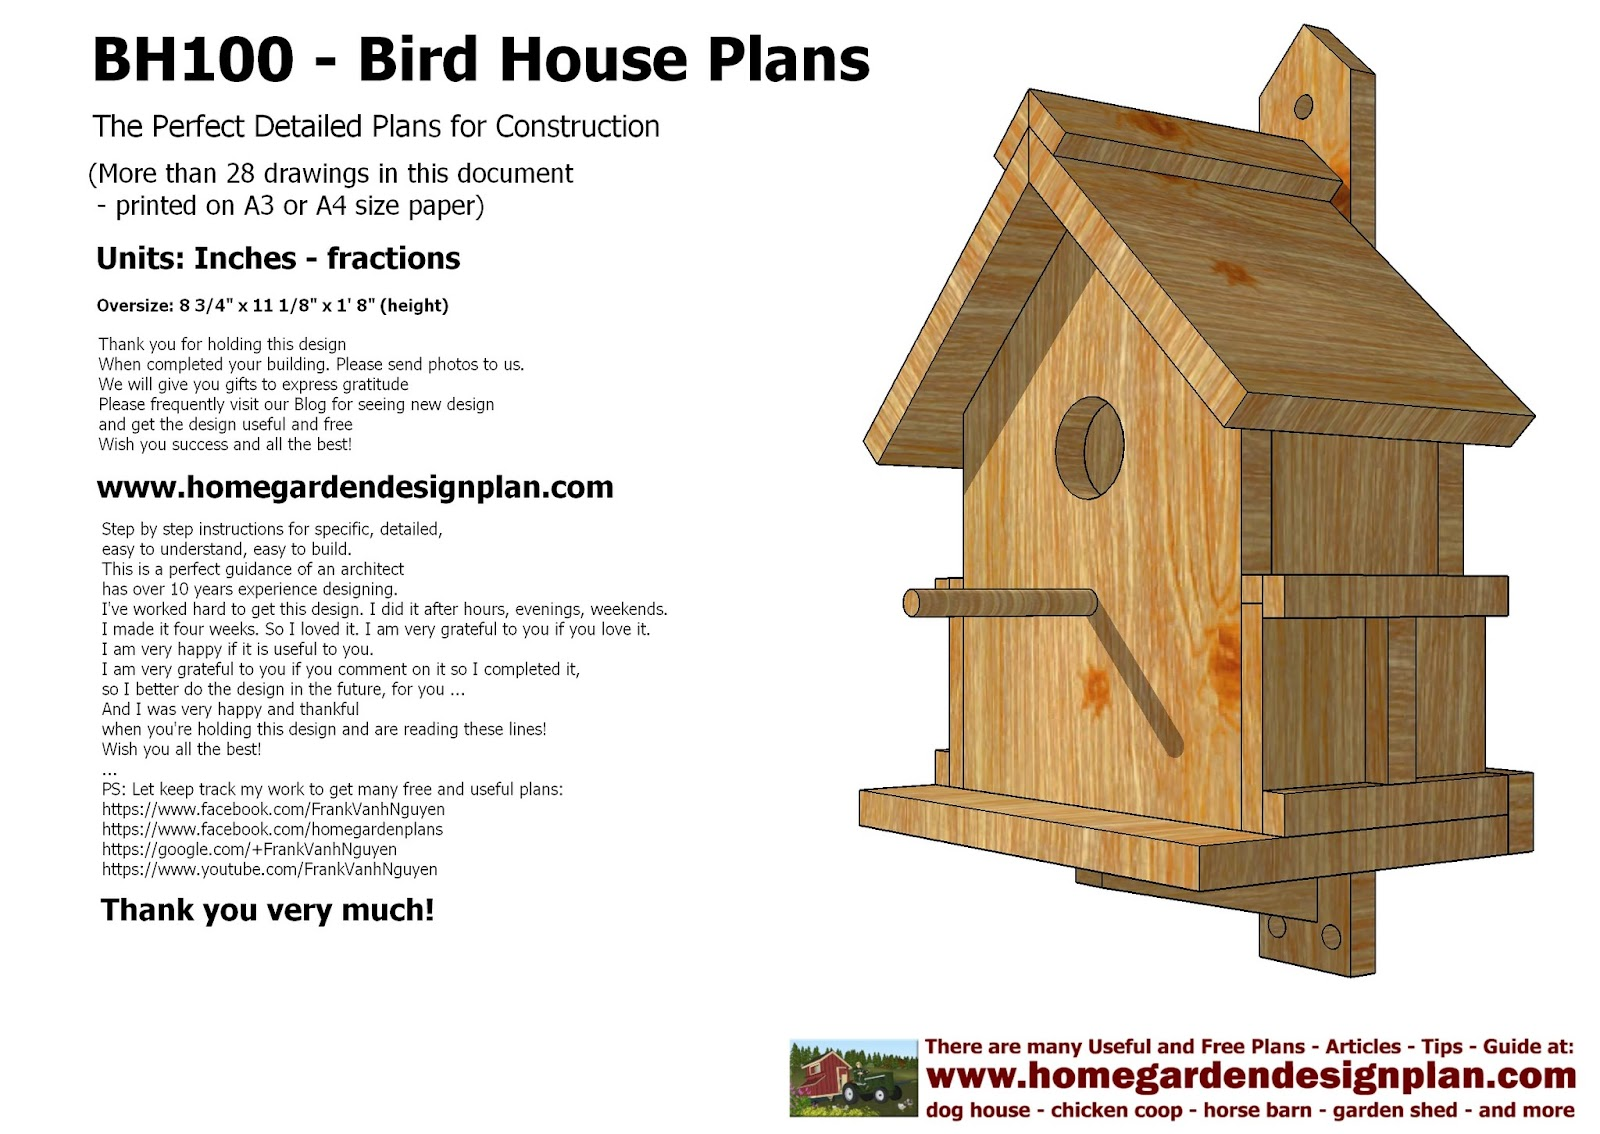 home garden plans: home garden plans: bh100 - bird house plans